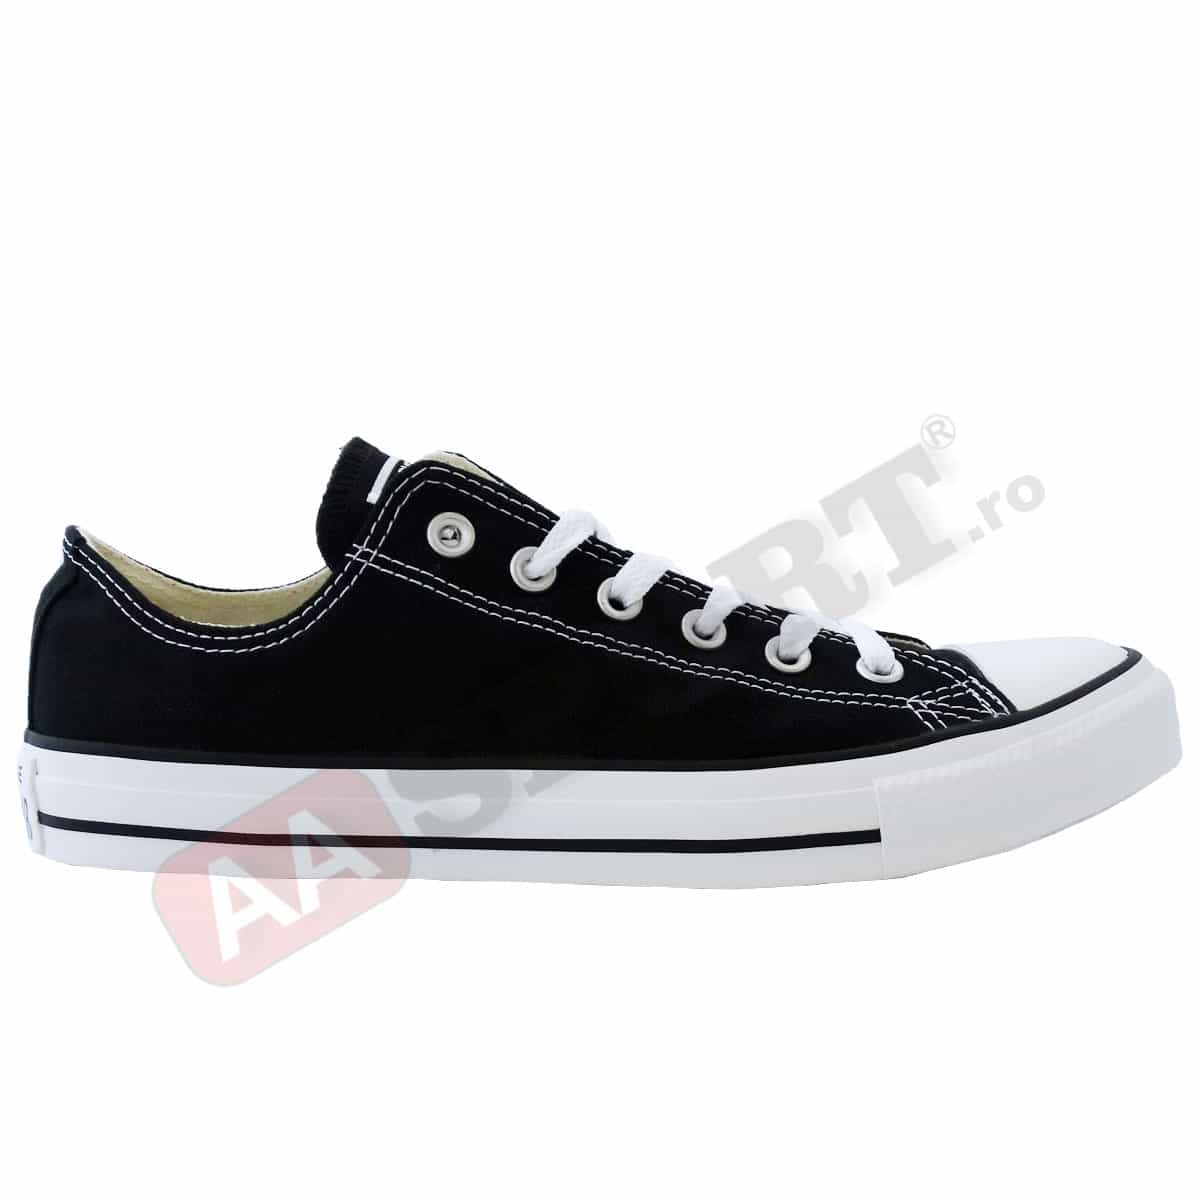 TENISI ORIGINALI CONVERSE ALL STAR OX - M9166C